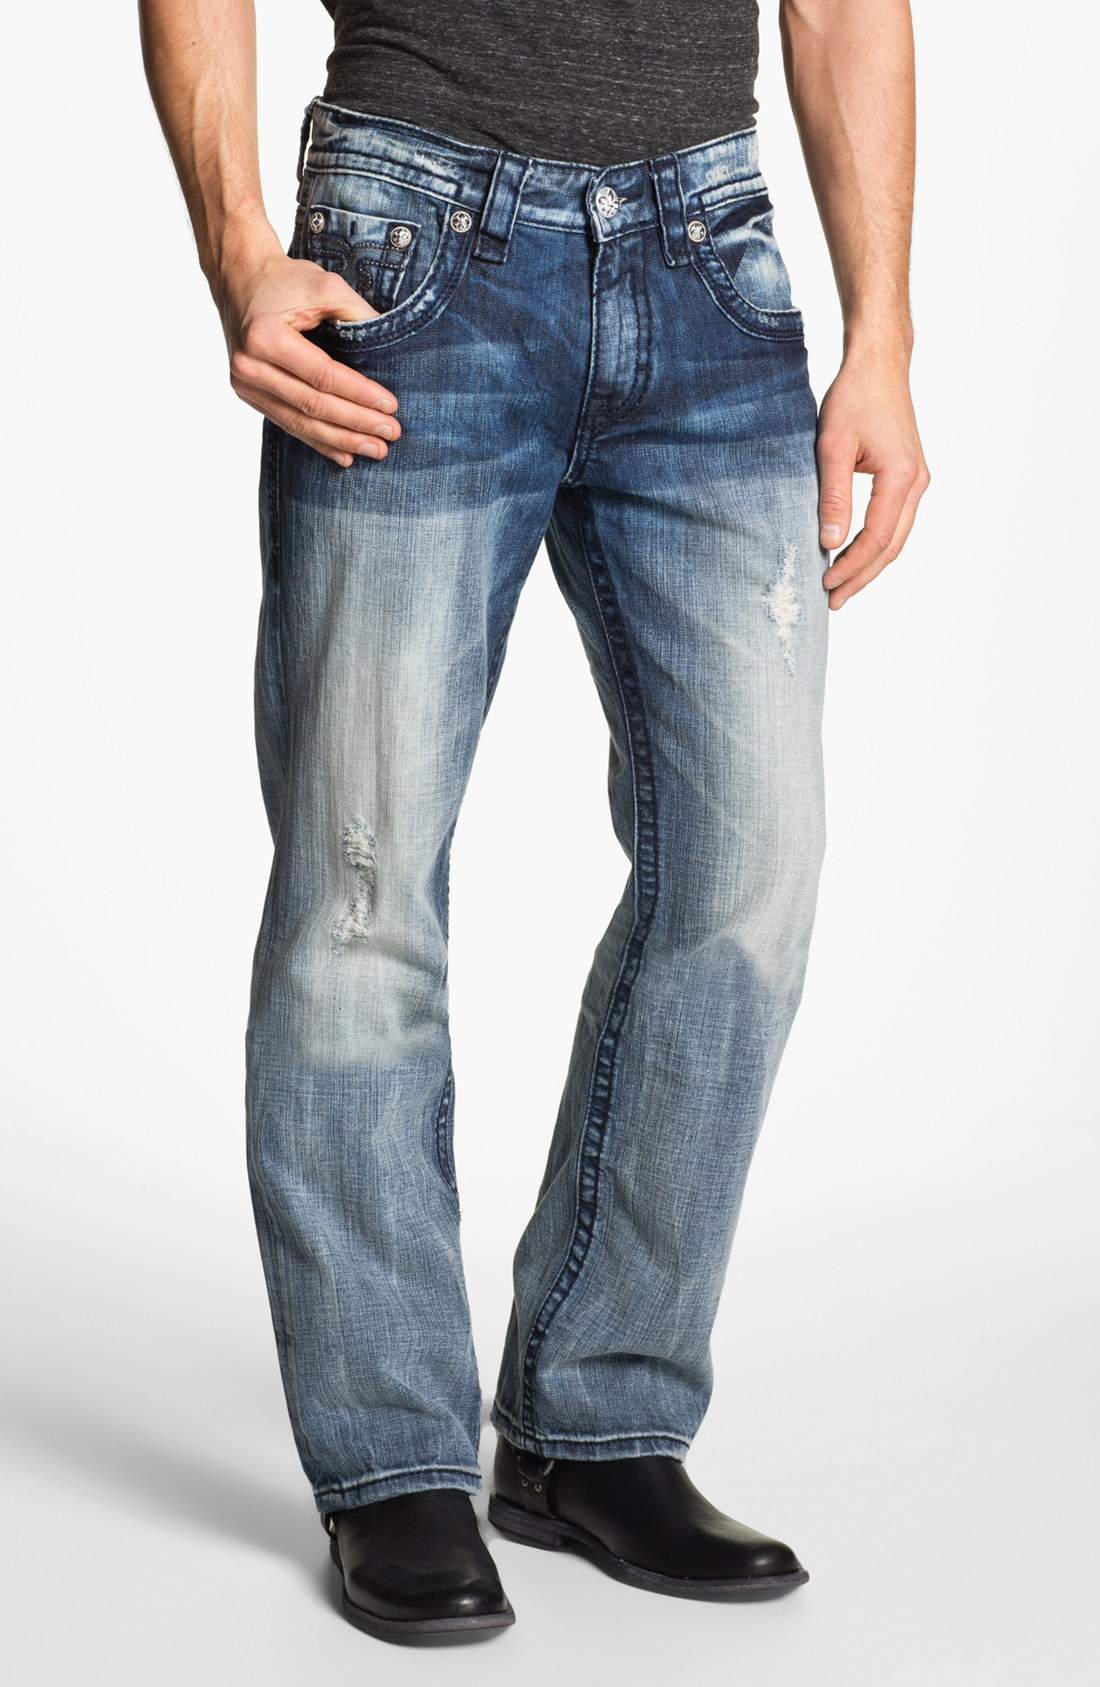 Rock Jeans For Men